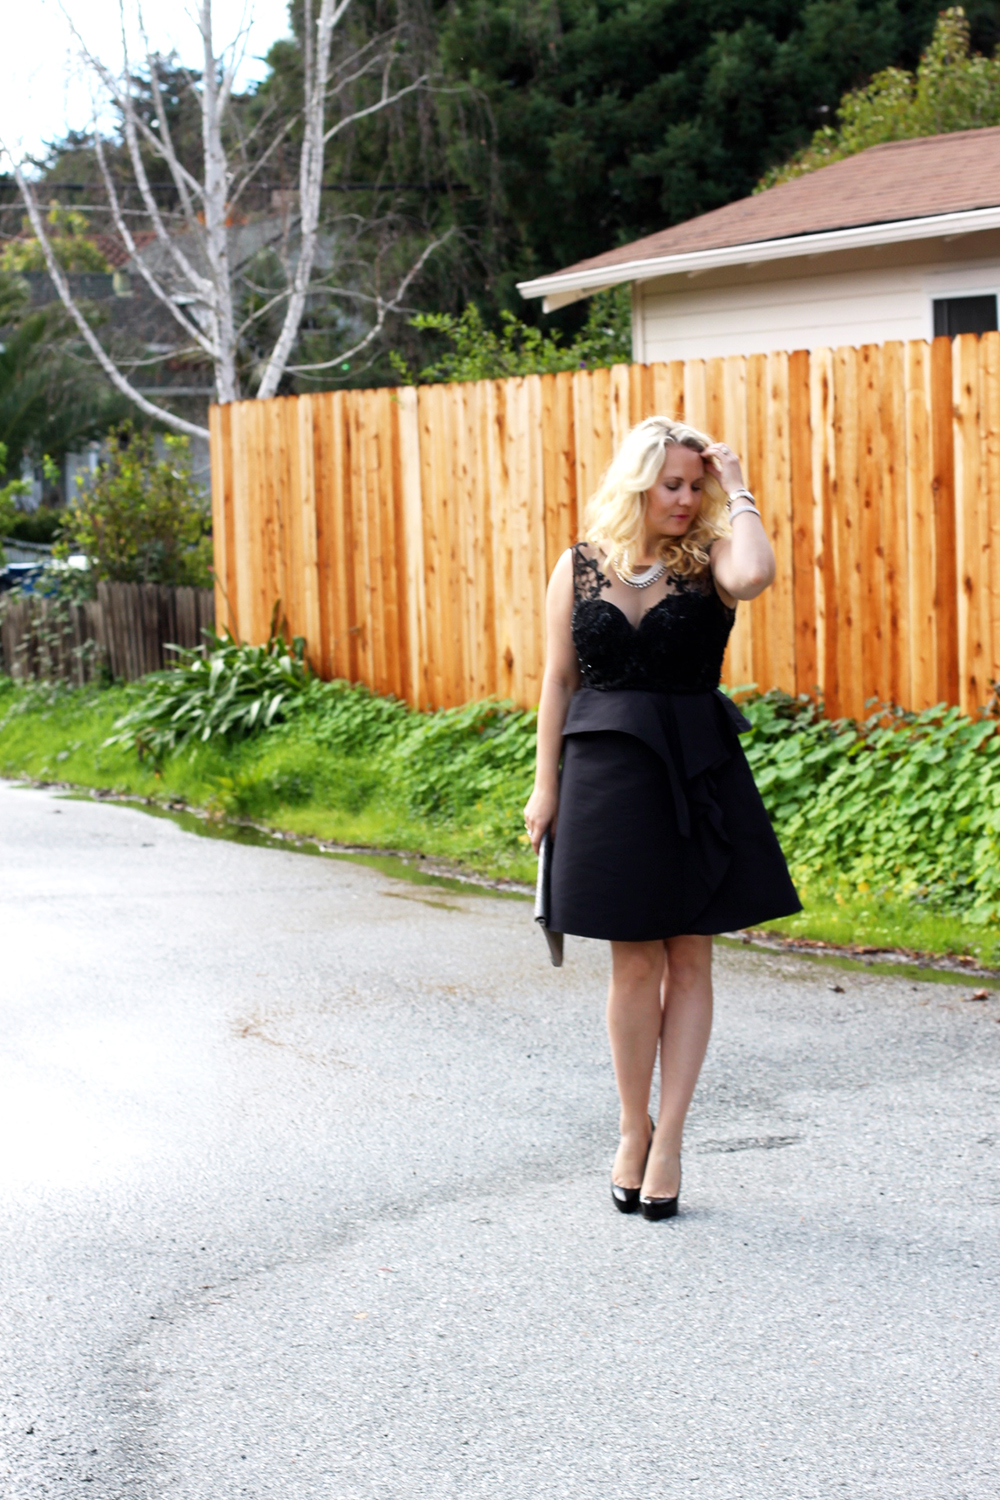 warmest-wishes-this-holiday-season-have-need-want-holiday-style-lbd-outfit-inspiration-7